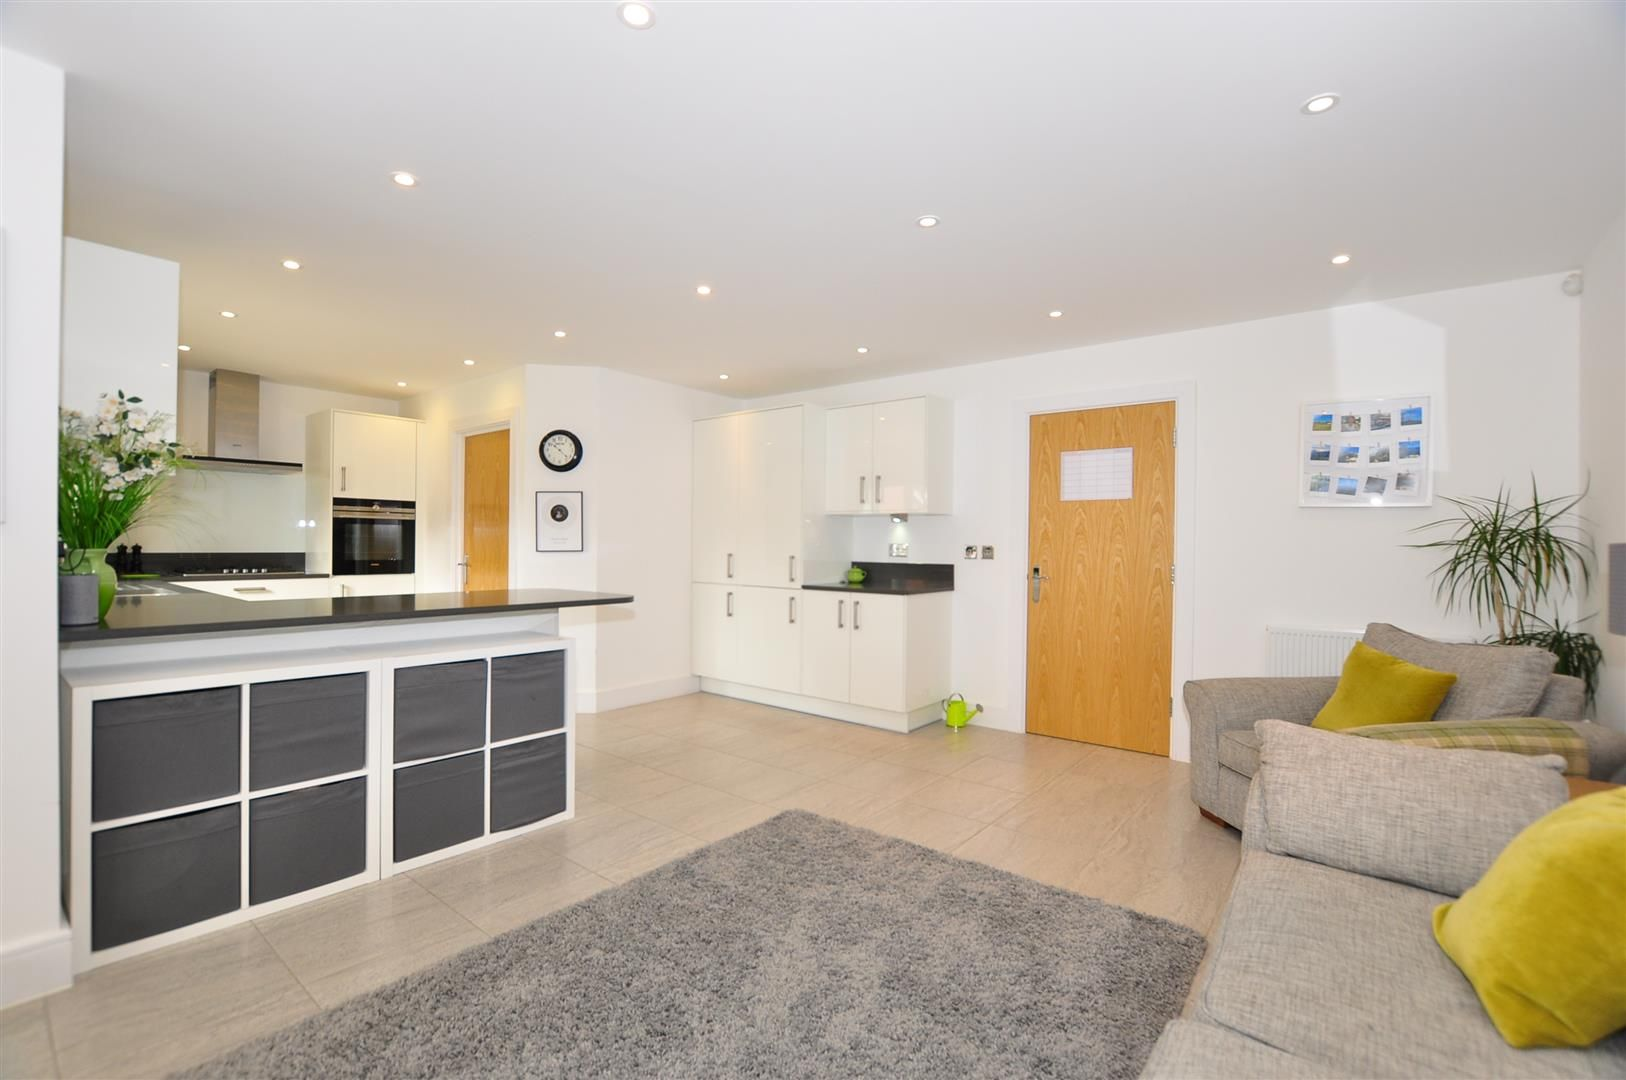 4 bed detached for sale in Hagley 6